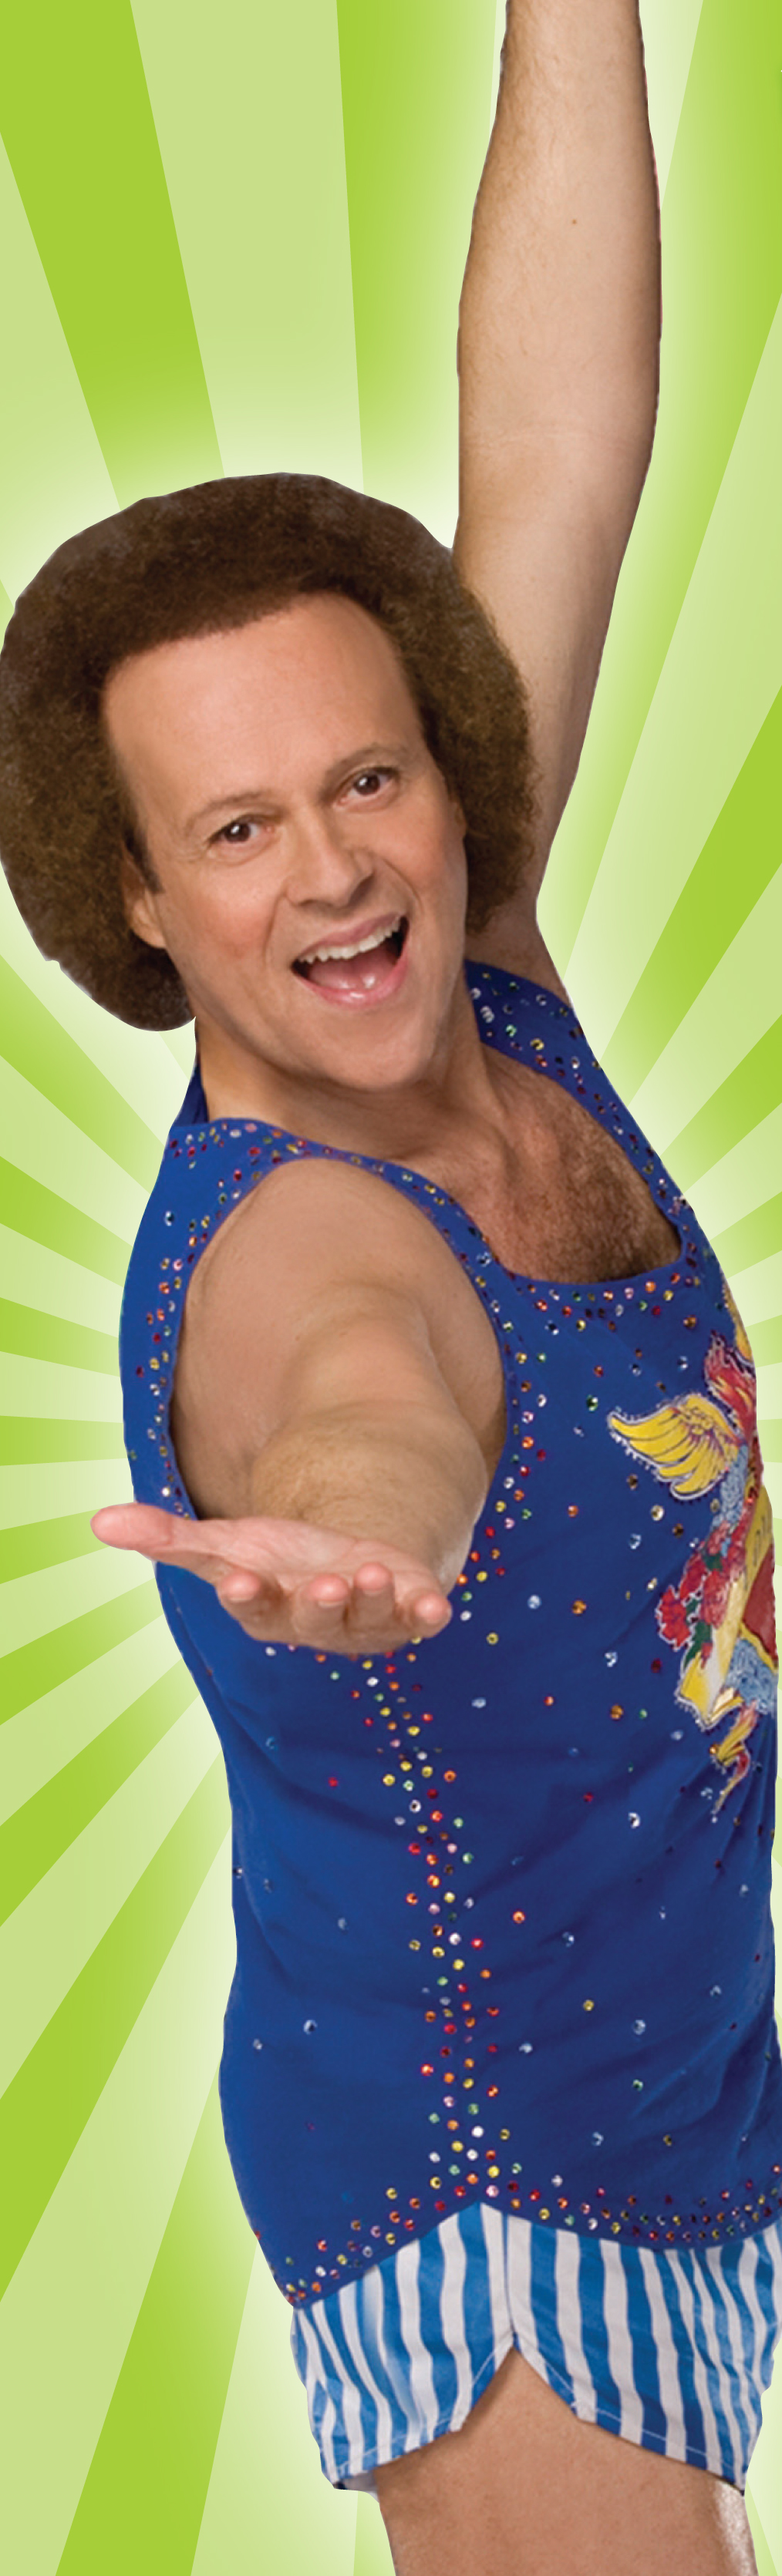 fitness legend richard simmons to speak at annual forum the health journal fitness nutrition. Black Bedroom Furniture Sets. Home Design Ideas